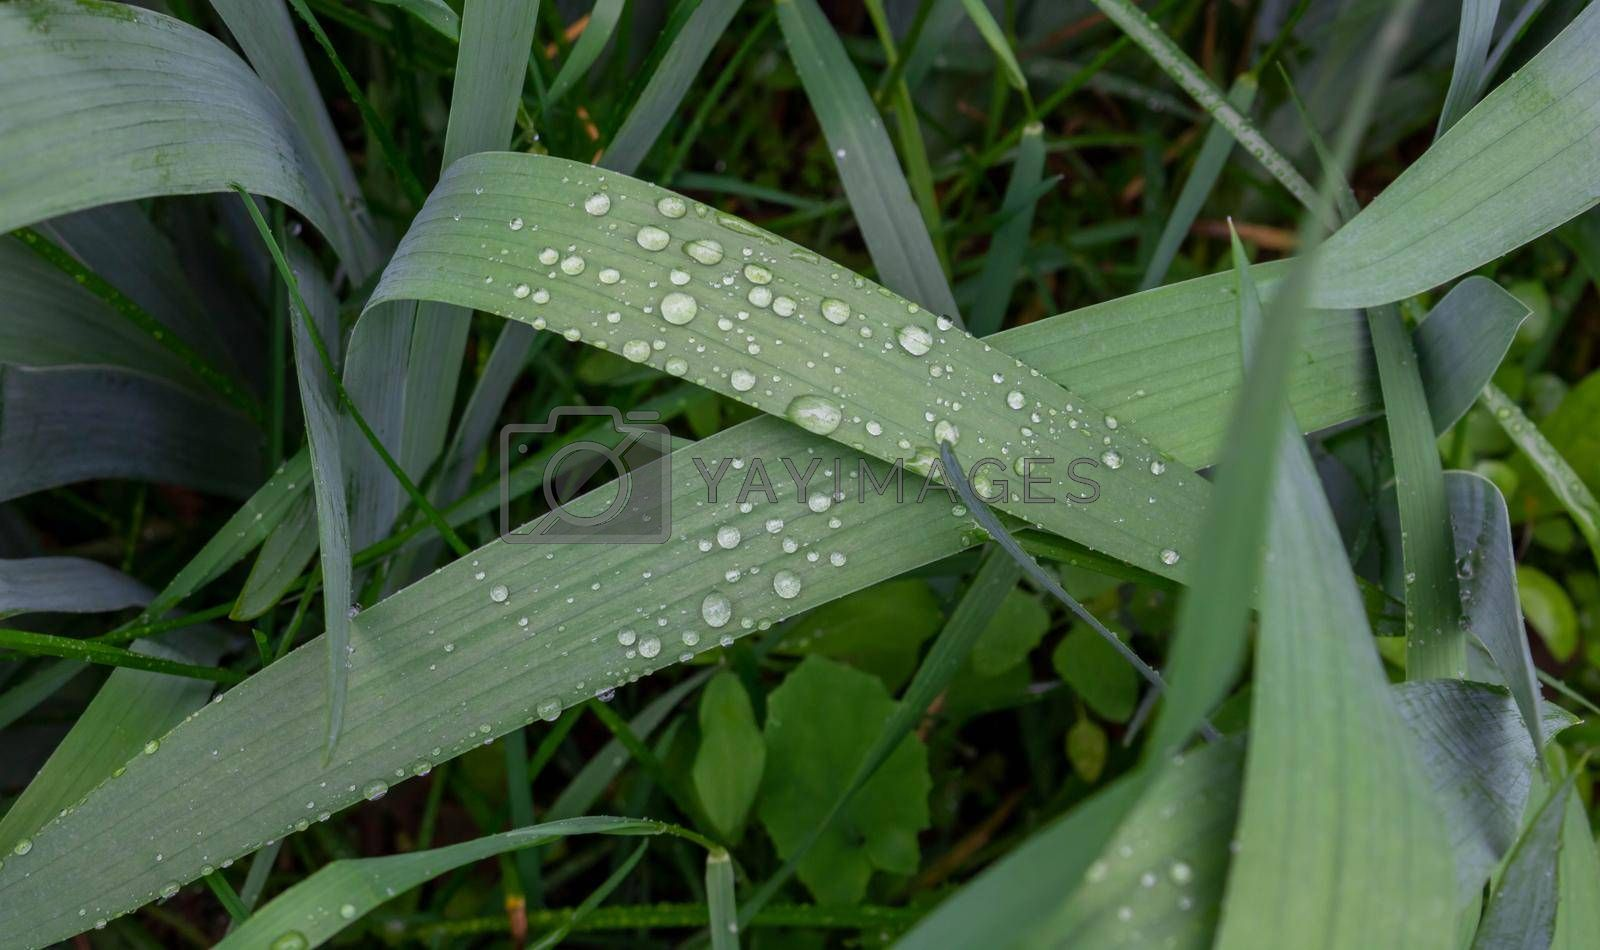 Dew drops on the grass in the early morning.